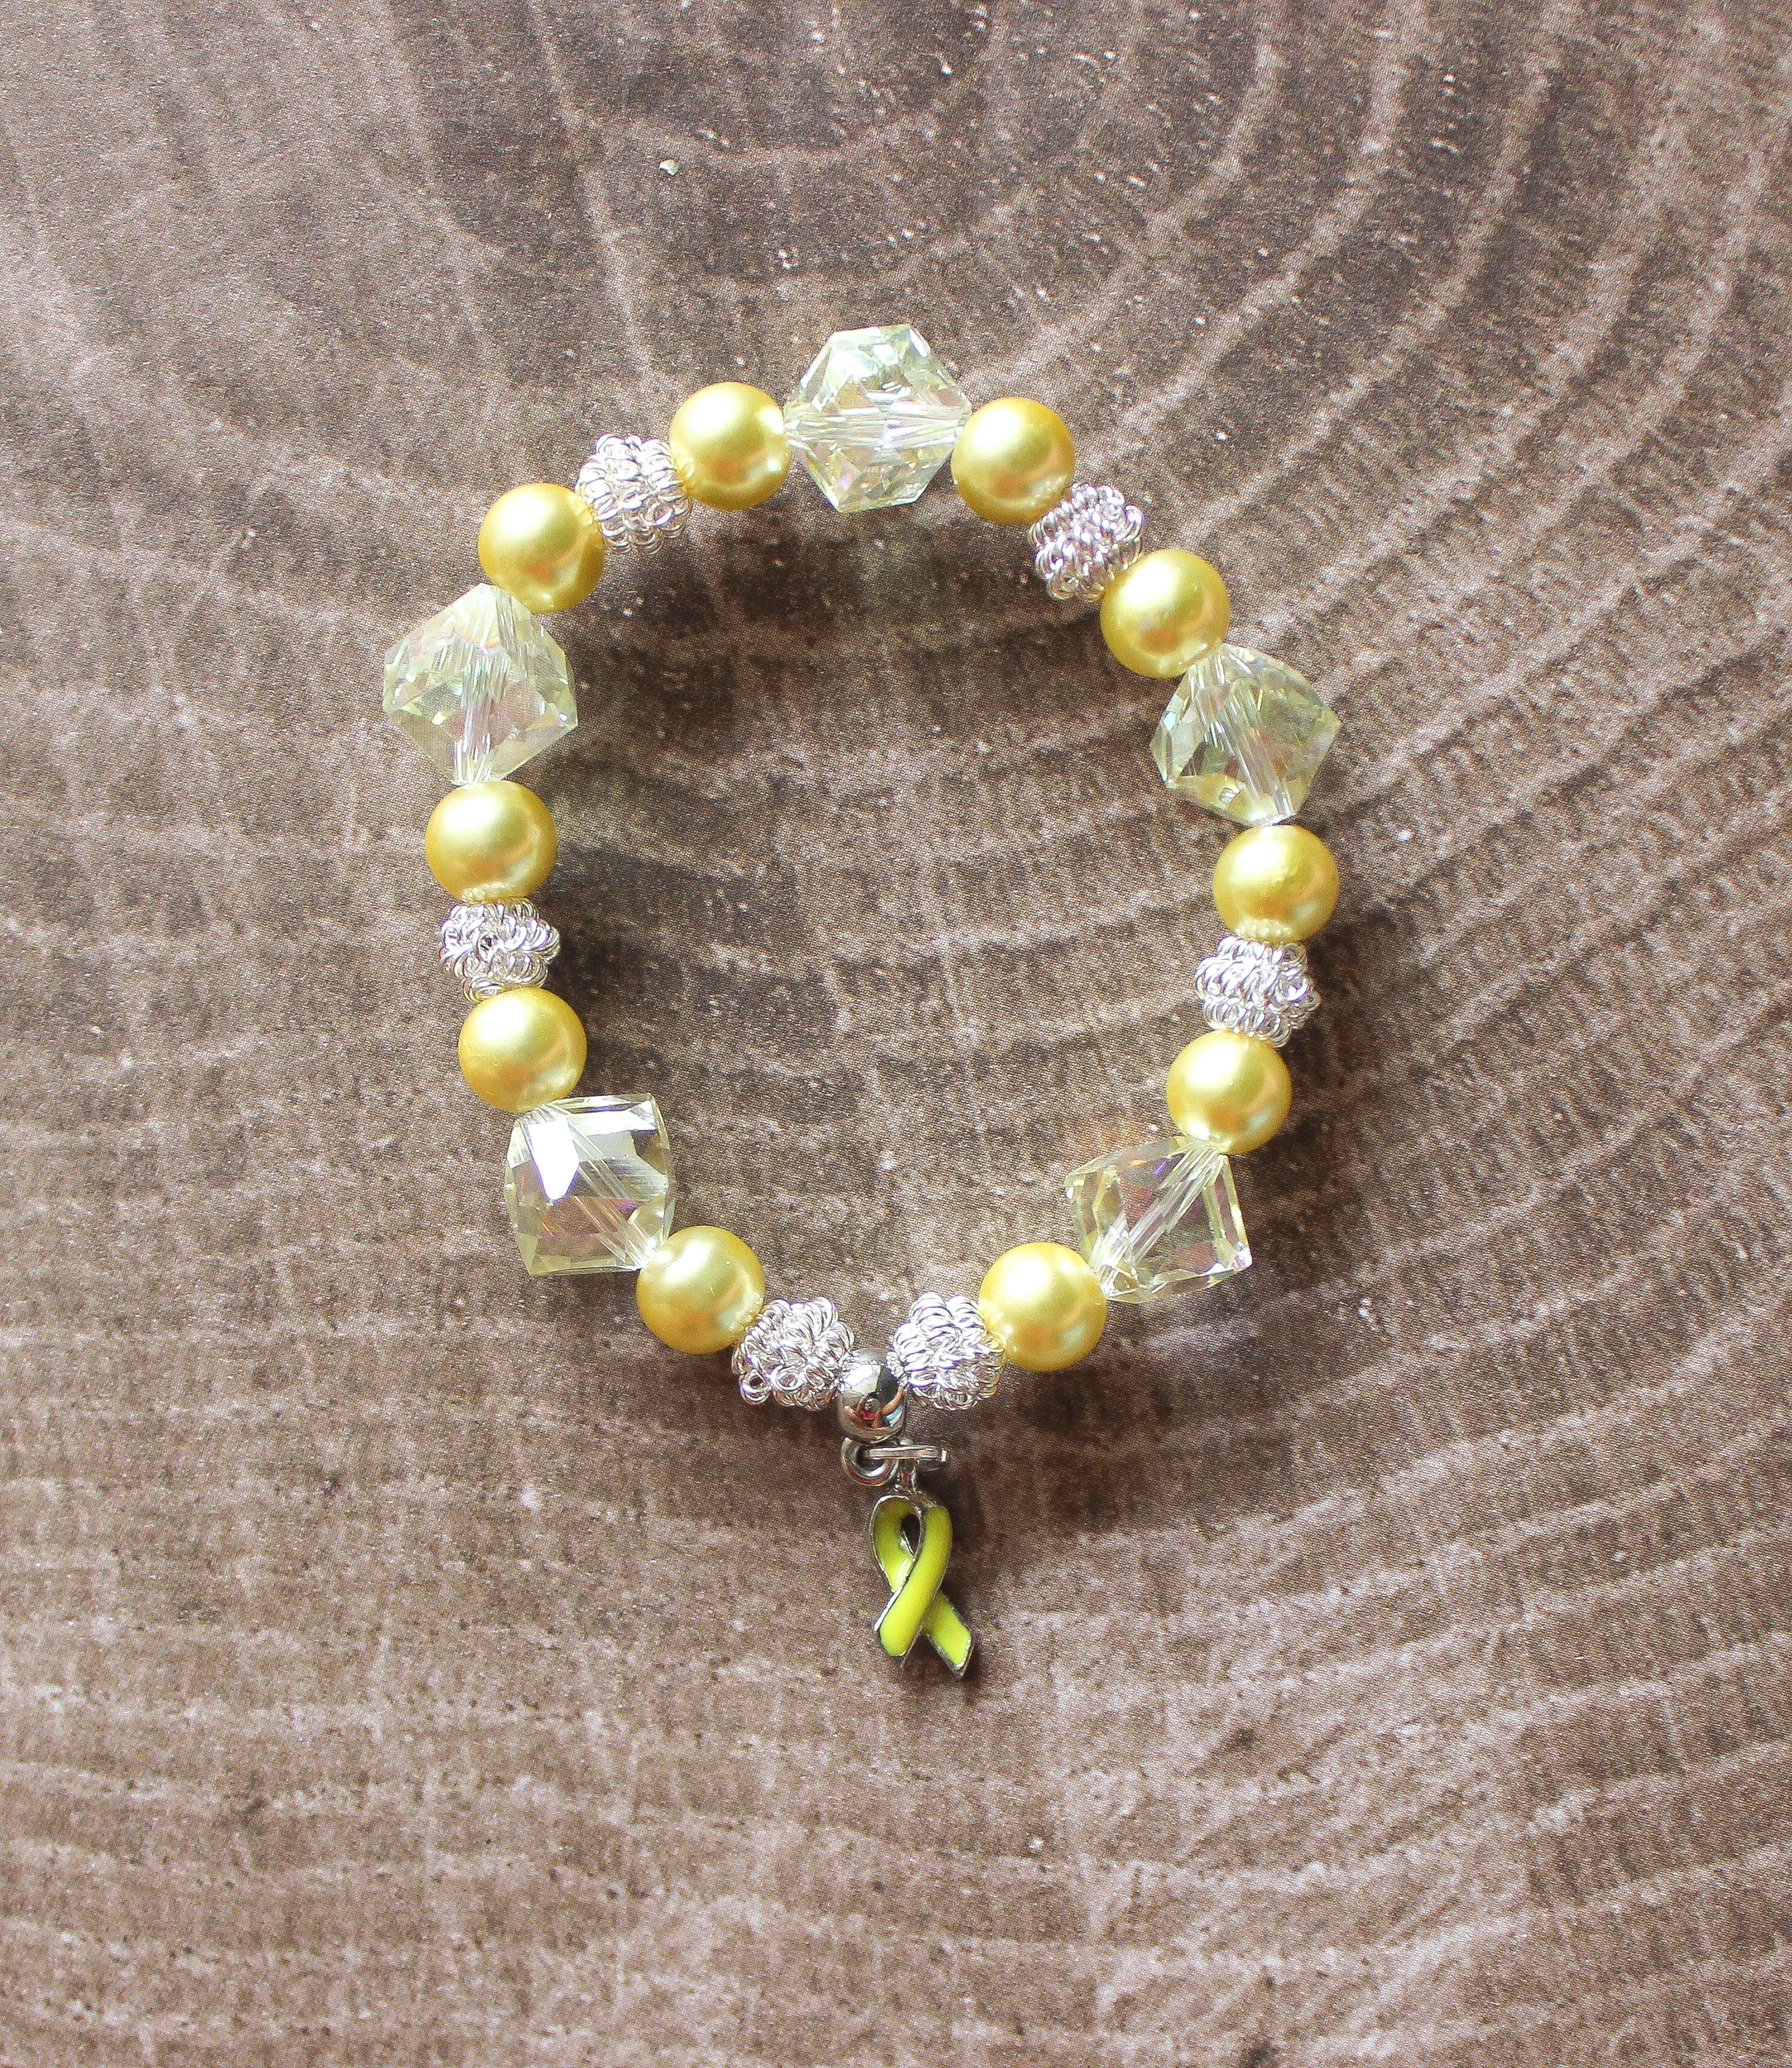 bifida spina ribbon fullxfull back listing never bracelet il look yellow en zoom adenosarcoma